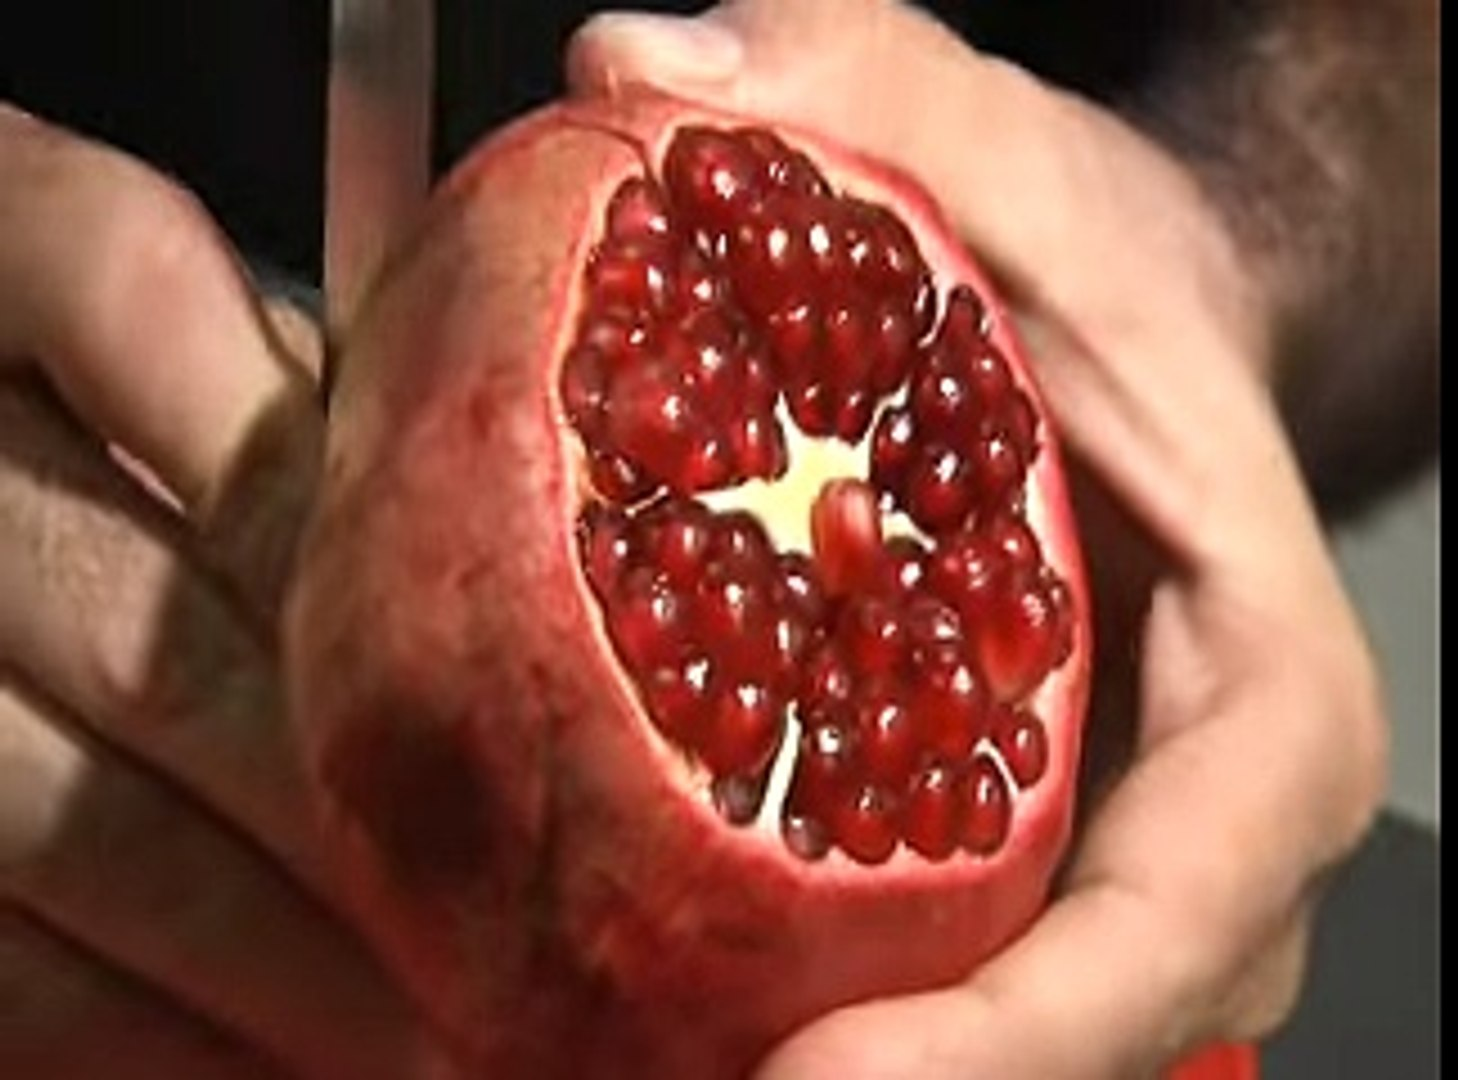 Pomegranate Pomegranate best opening technique top songs 2016 best songs new songs upcoming songs la